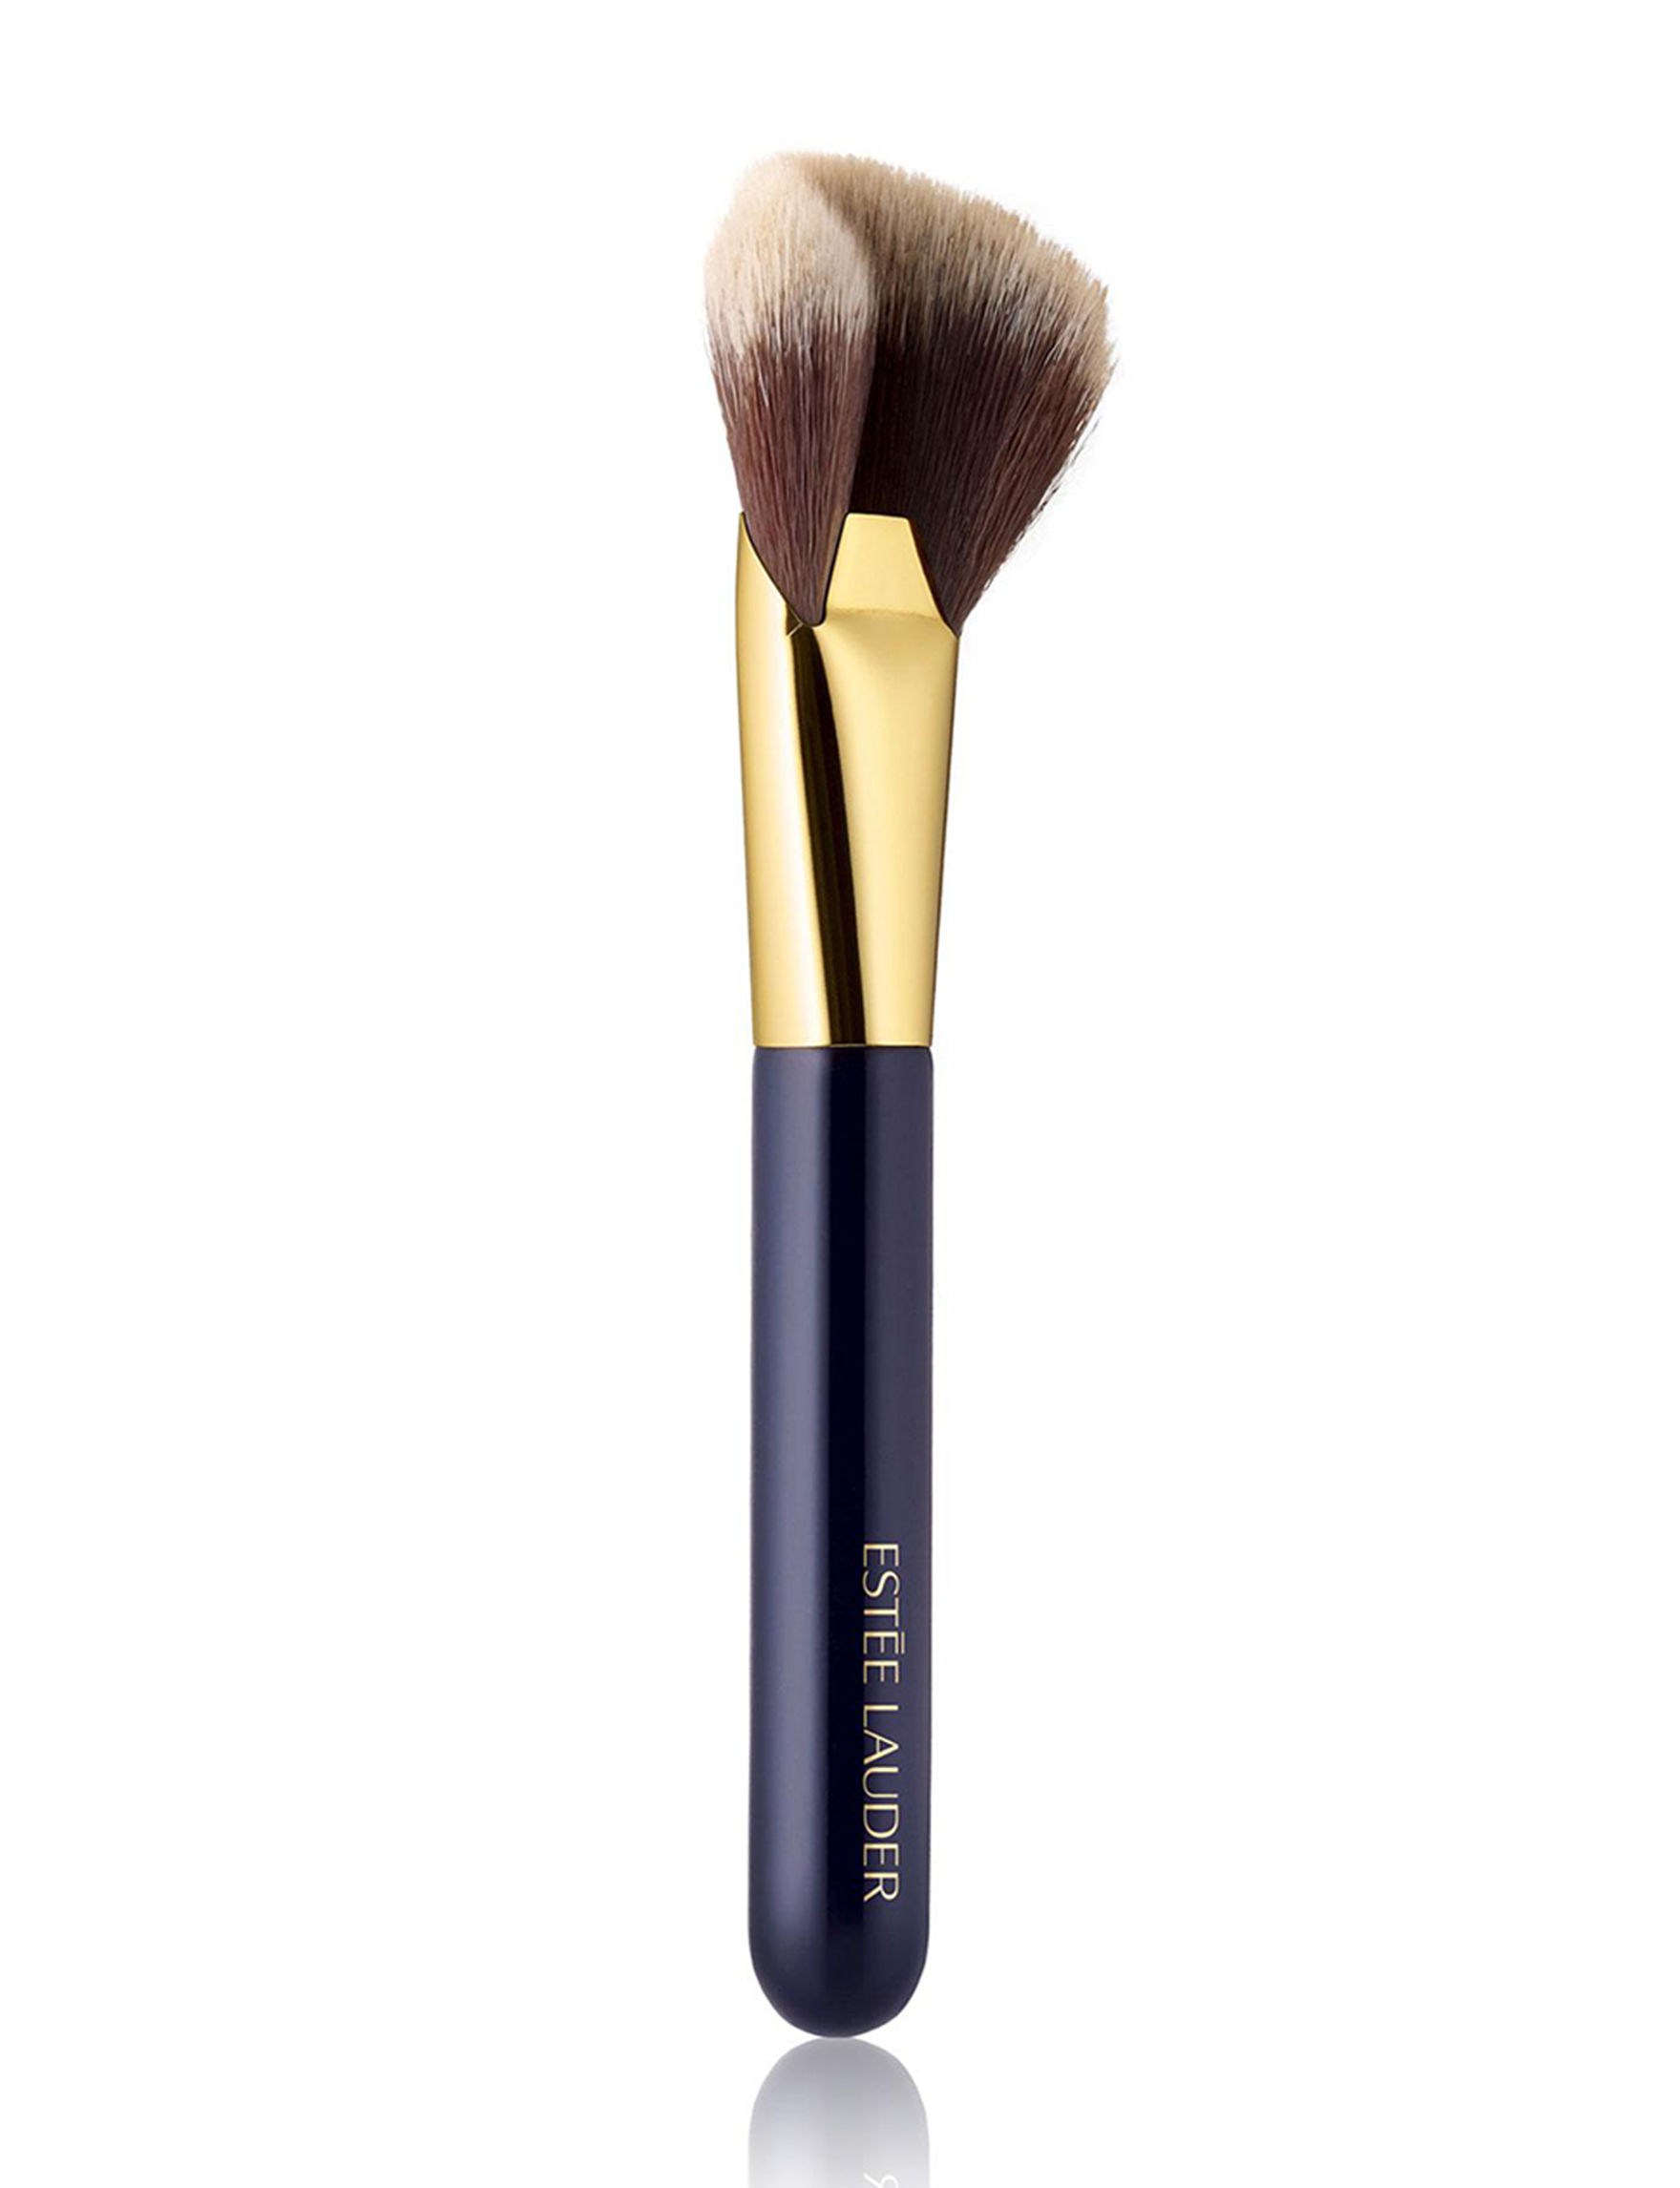 Estee Lauder  Tools & Brushes Powder Brush